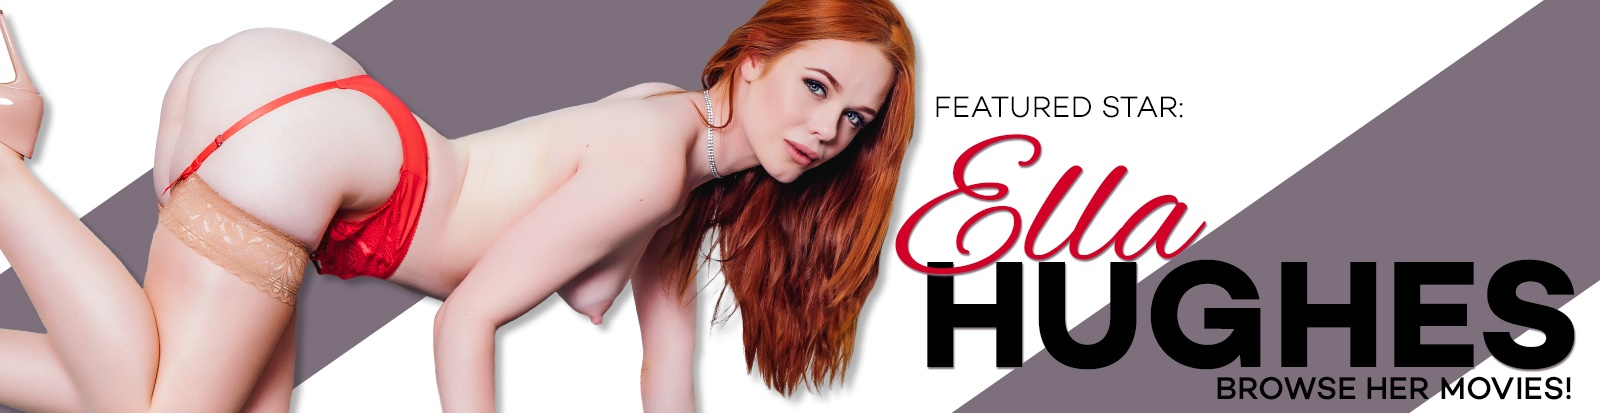 Browse feature star Ella Hughes movies today!